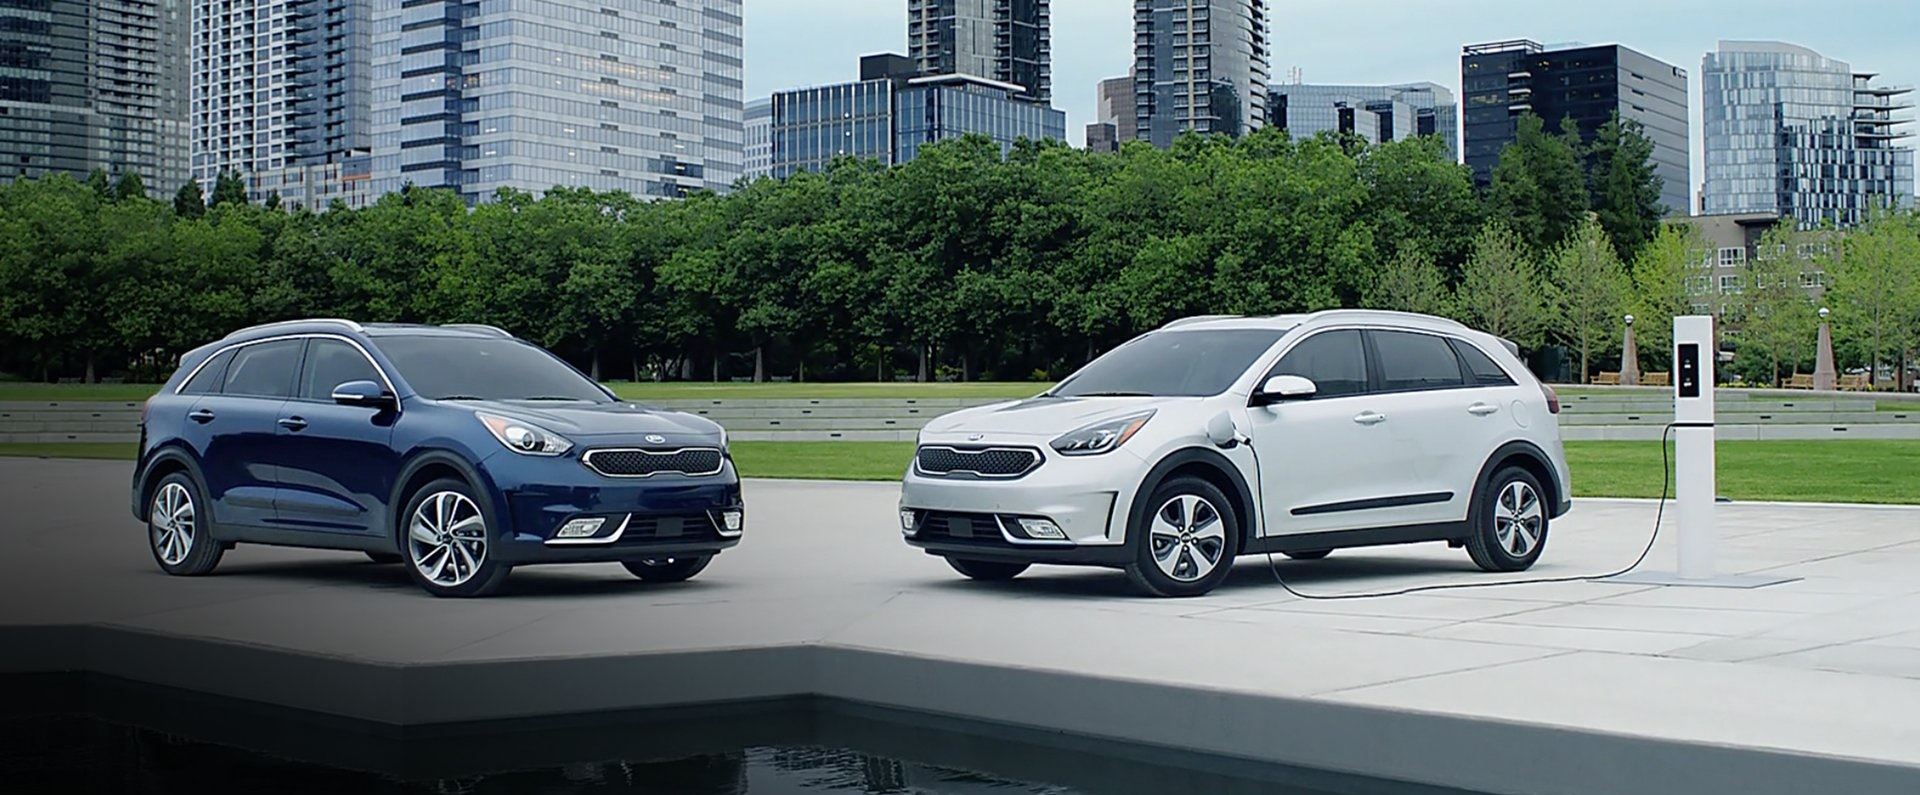 Kia Niro PHEV is a Great First-Time Alternative Fuel Vehicle